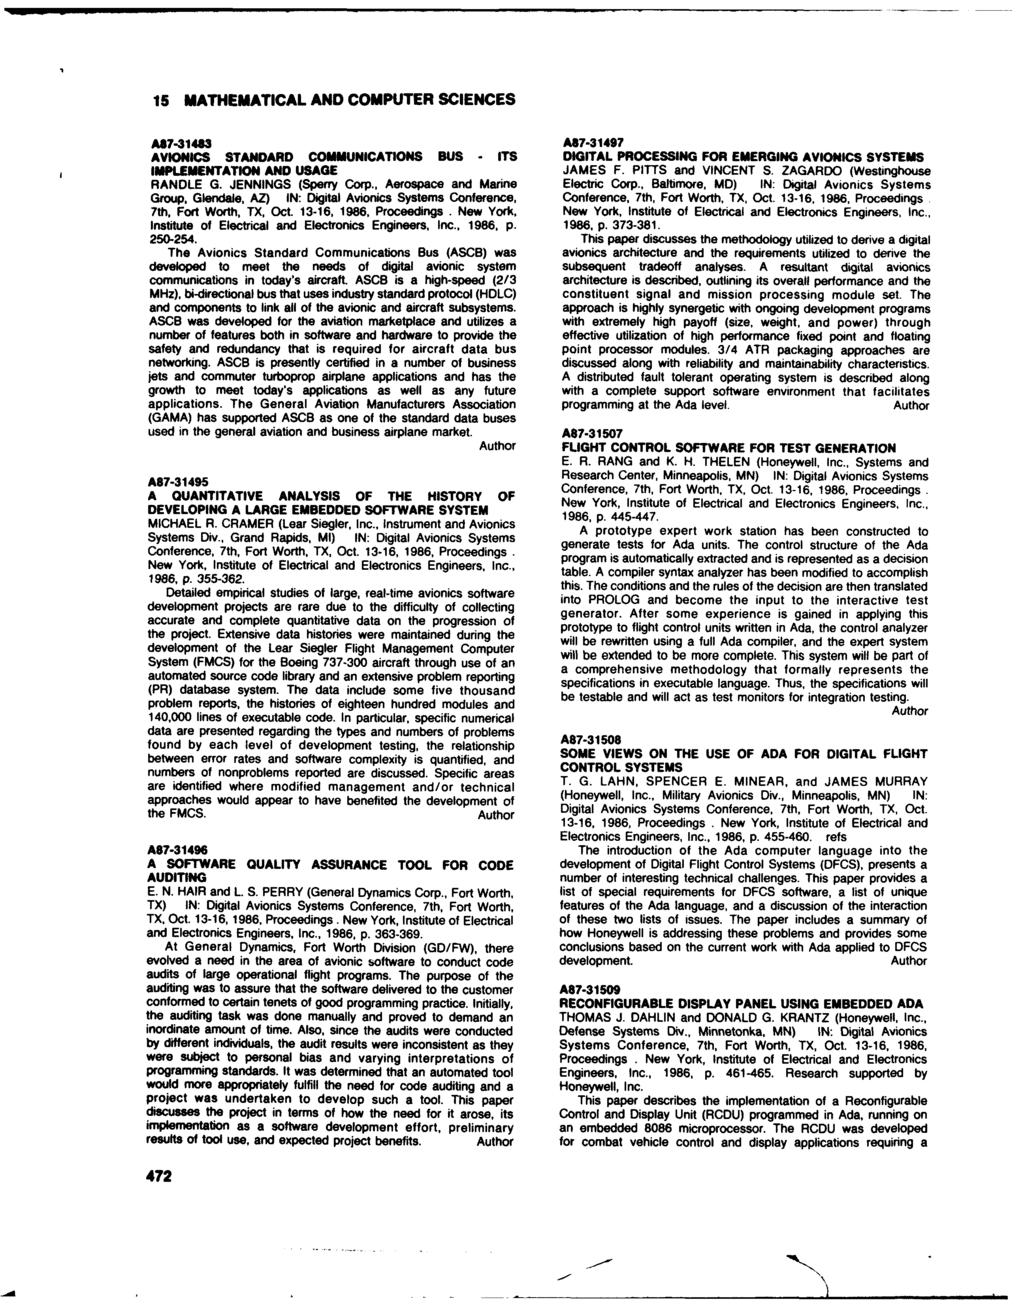 15 MATHEMATICAL AND COMPUTER SCIENCES A87-3143 A87-31497 AVIONICS STANDARD COMMUNICATIONS BUS - ITS DIGITAL PROCESSING FOR EMERGING AVIONICS SYSTEMS IMPLEMENTATION AND USAGE JAMES F.